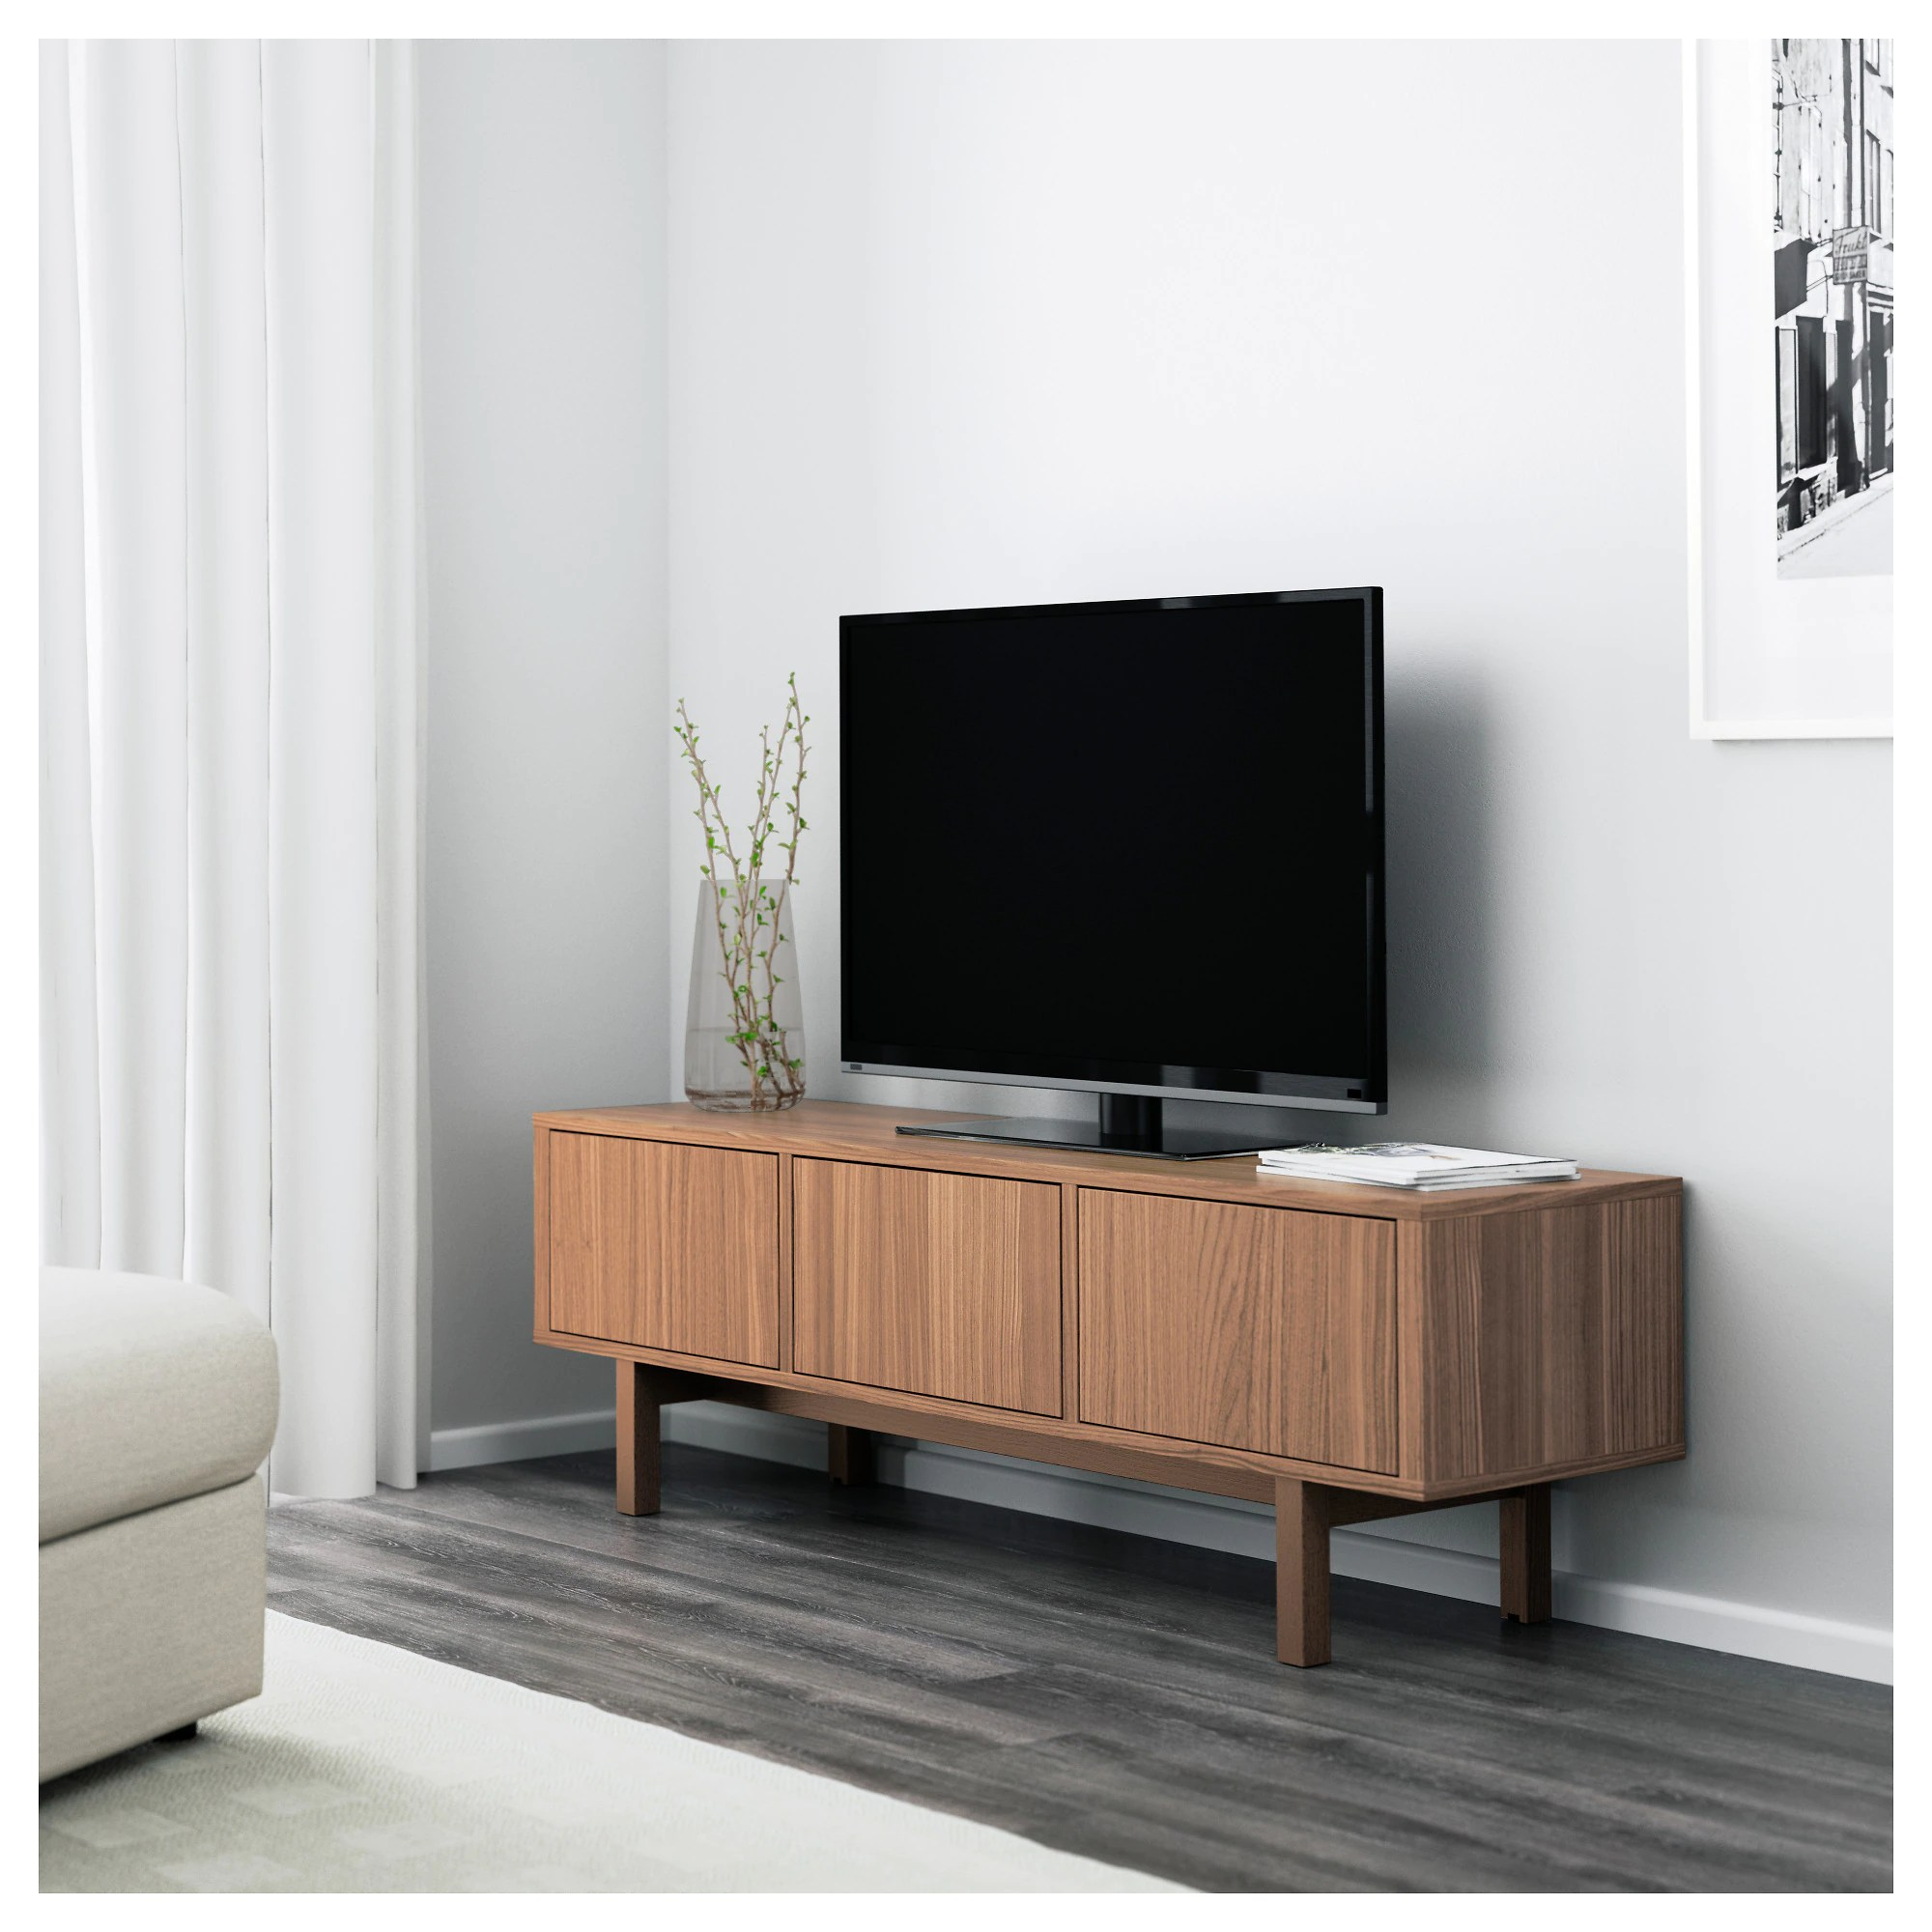 Ikea Tv Sideboard Stockholm Tv Meubel Walnootfineer